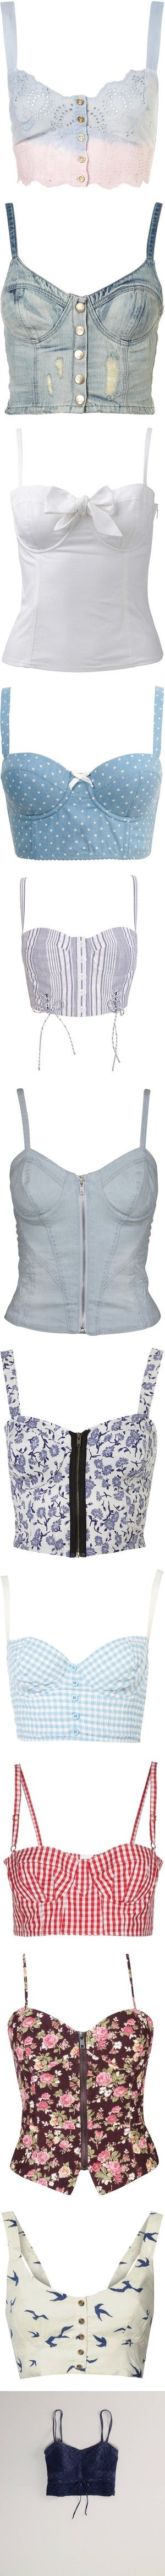 Would be cute with a see through button up, cardigan, or vest over it. There are so many ideas. (corset tops)